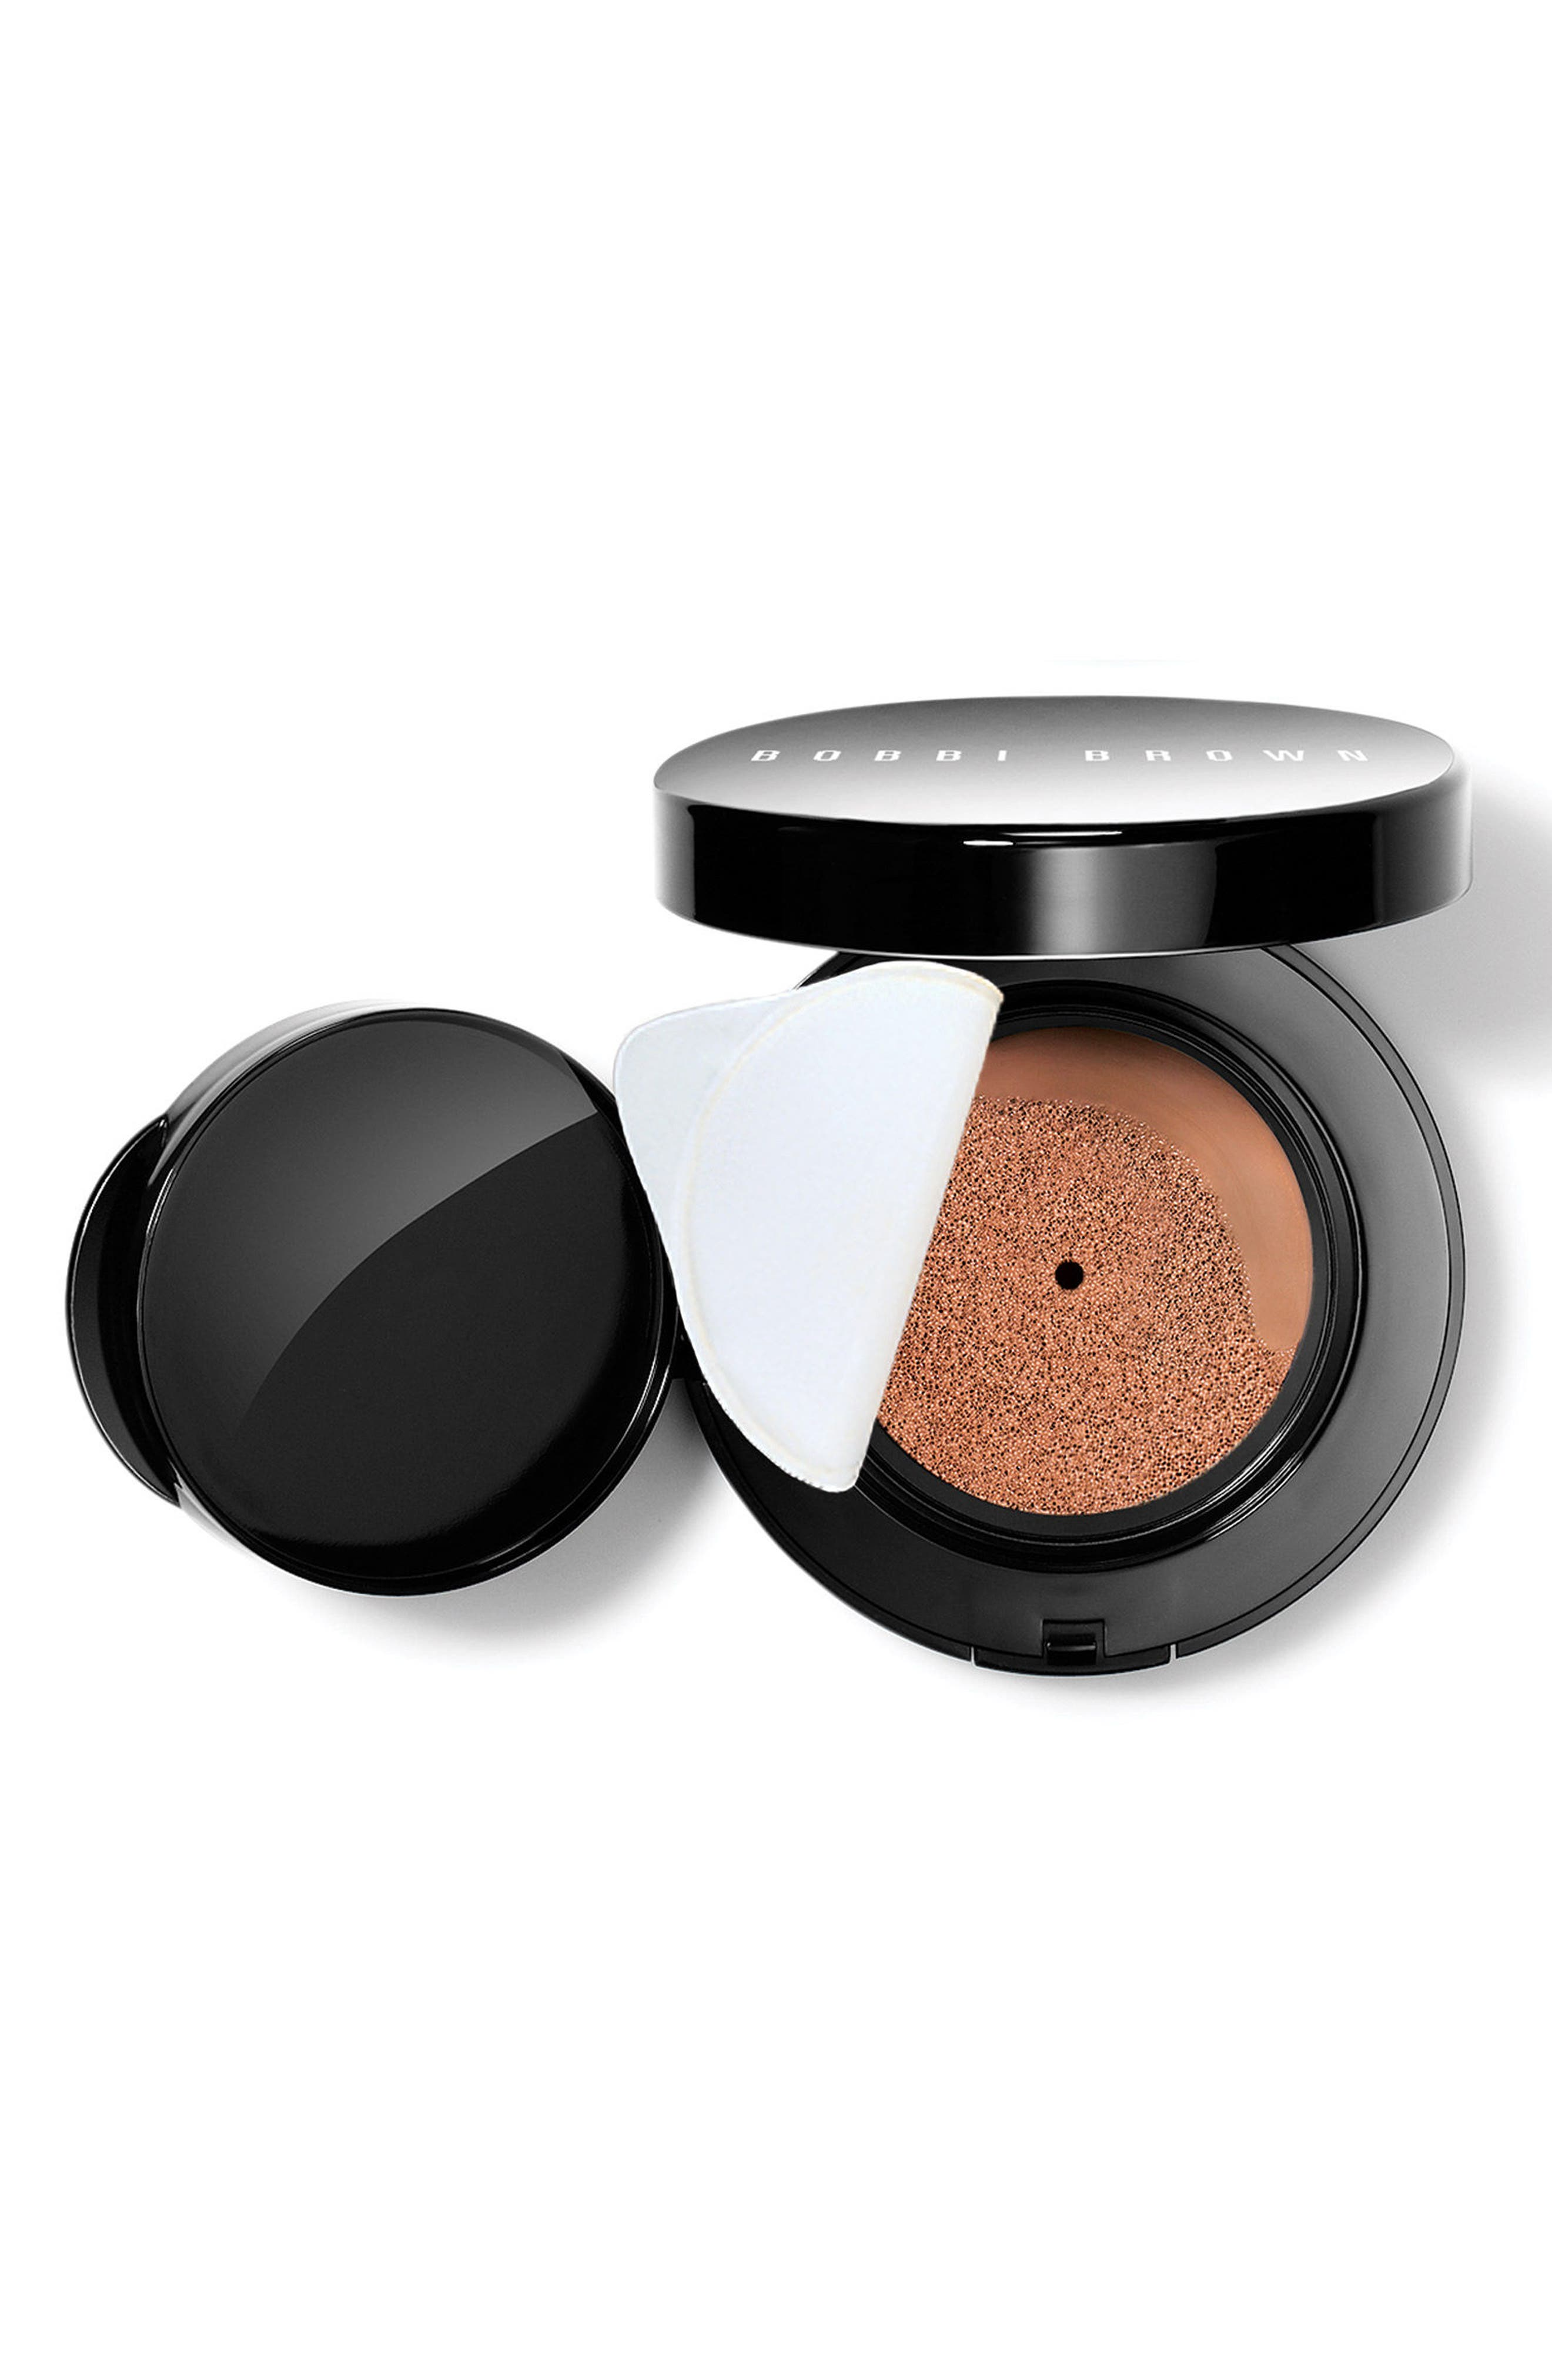 Skin Foundation Cushion Compact SPF 35,                             Main thumbnail 1, color,                             200